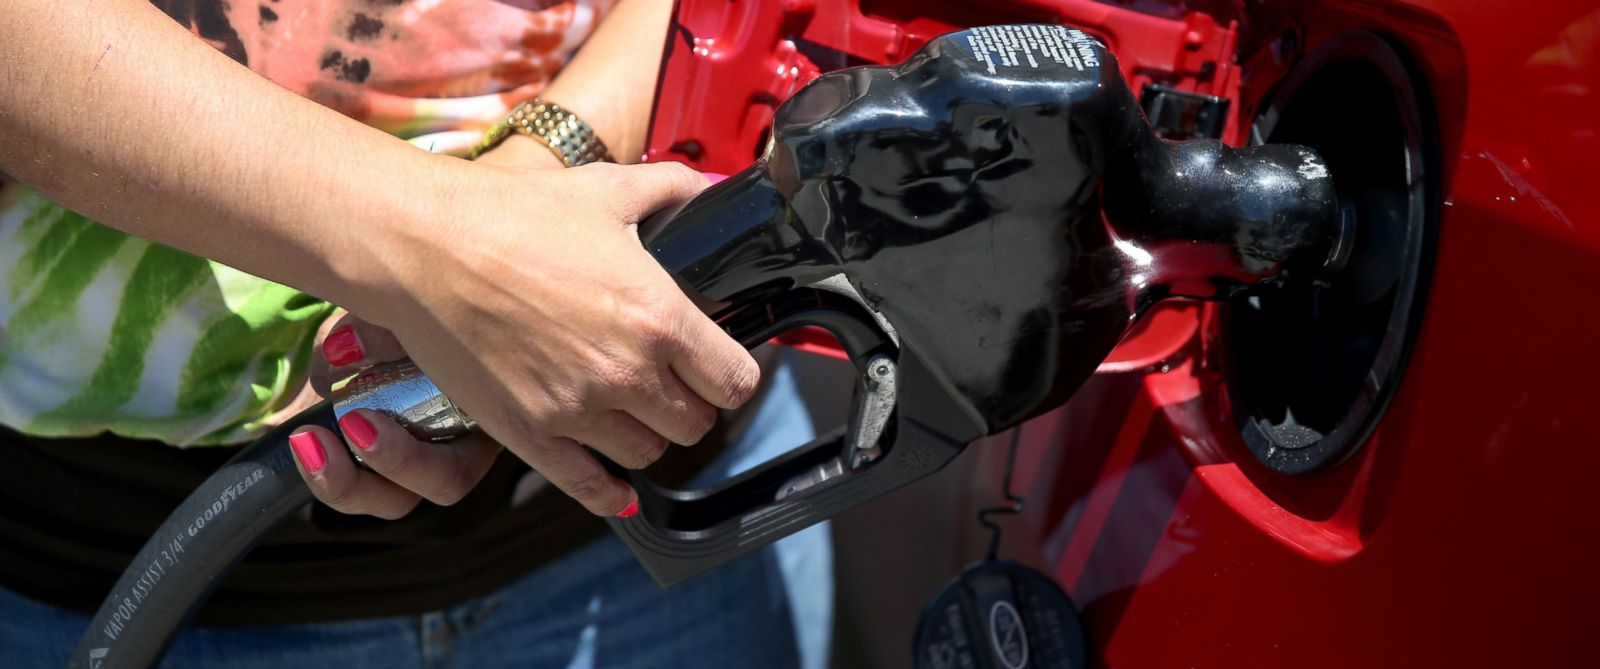 PHOTO: Dora Galeano pumps gas at the Victory gas station on April 21, 2014 in Pembroke Pines, Florida.